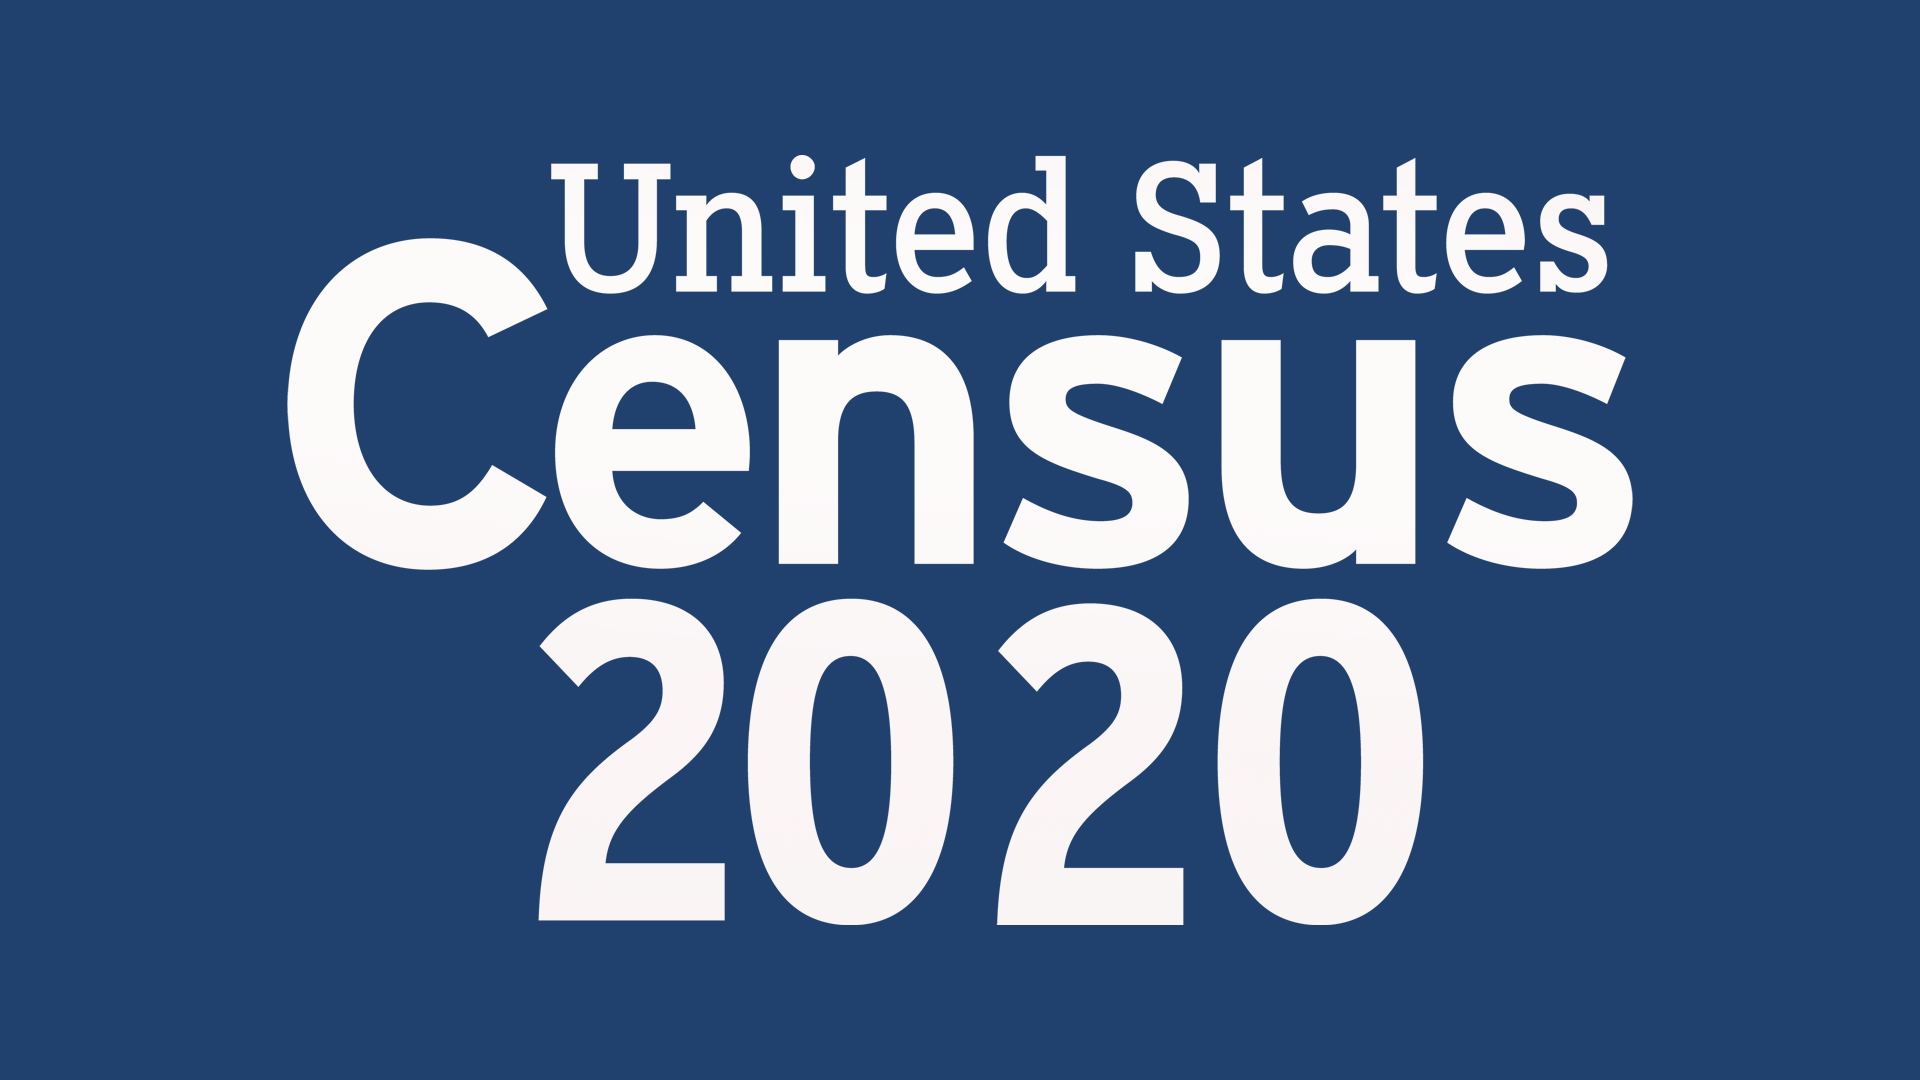 The logo for the United States Census 2020.